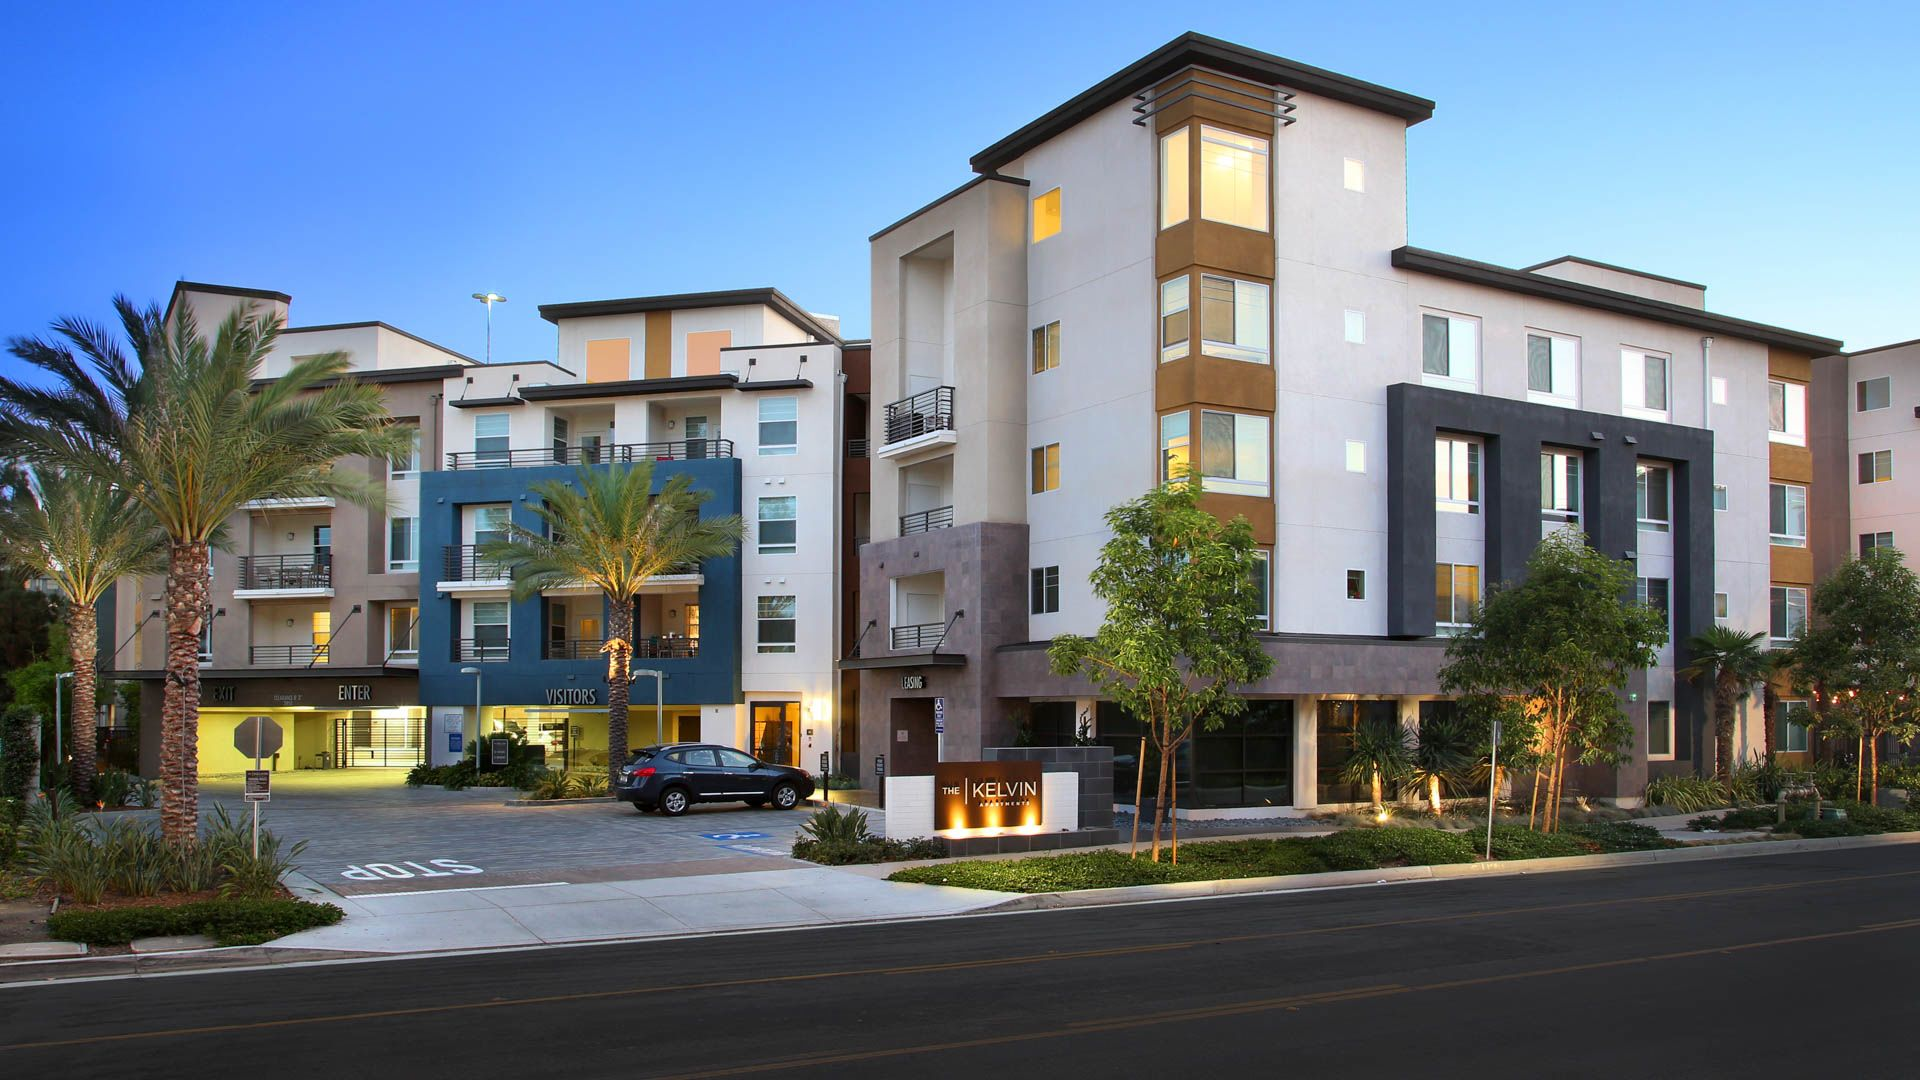 Affordable Apartments For Rent In Irvine Ca